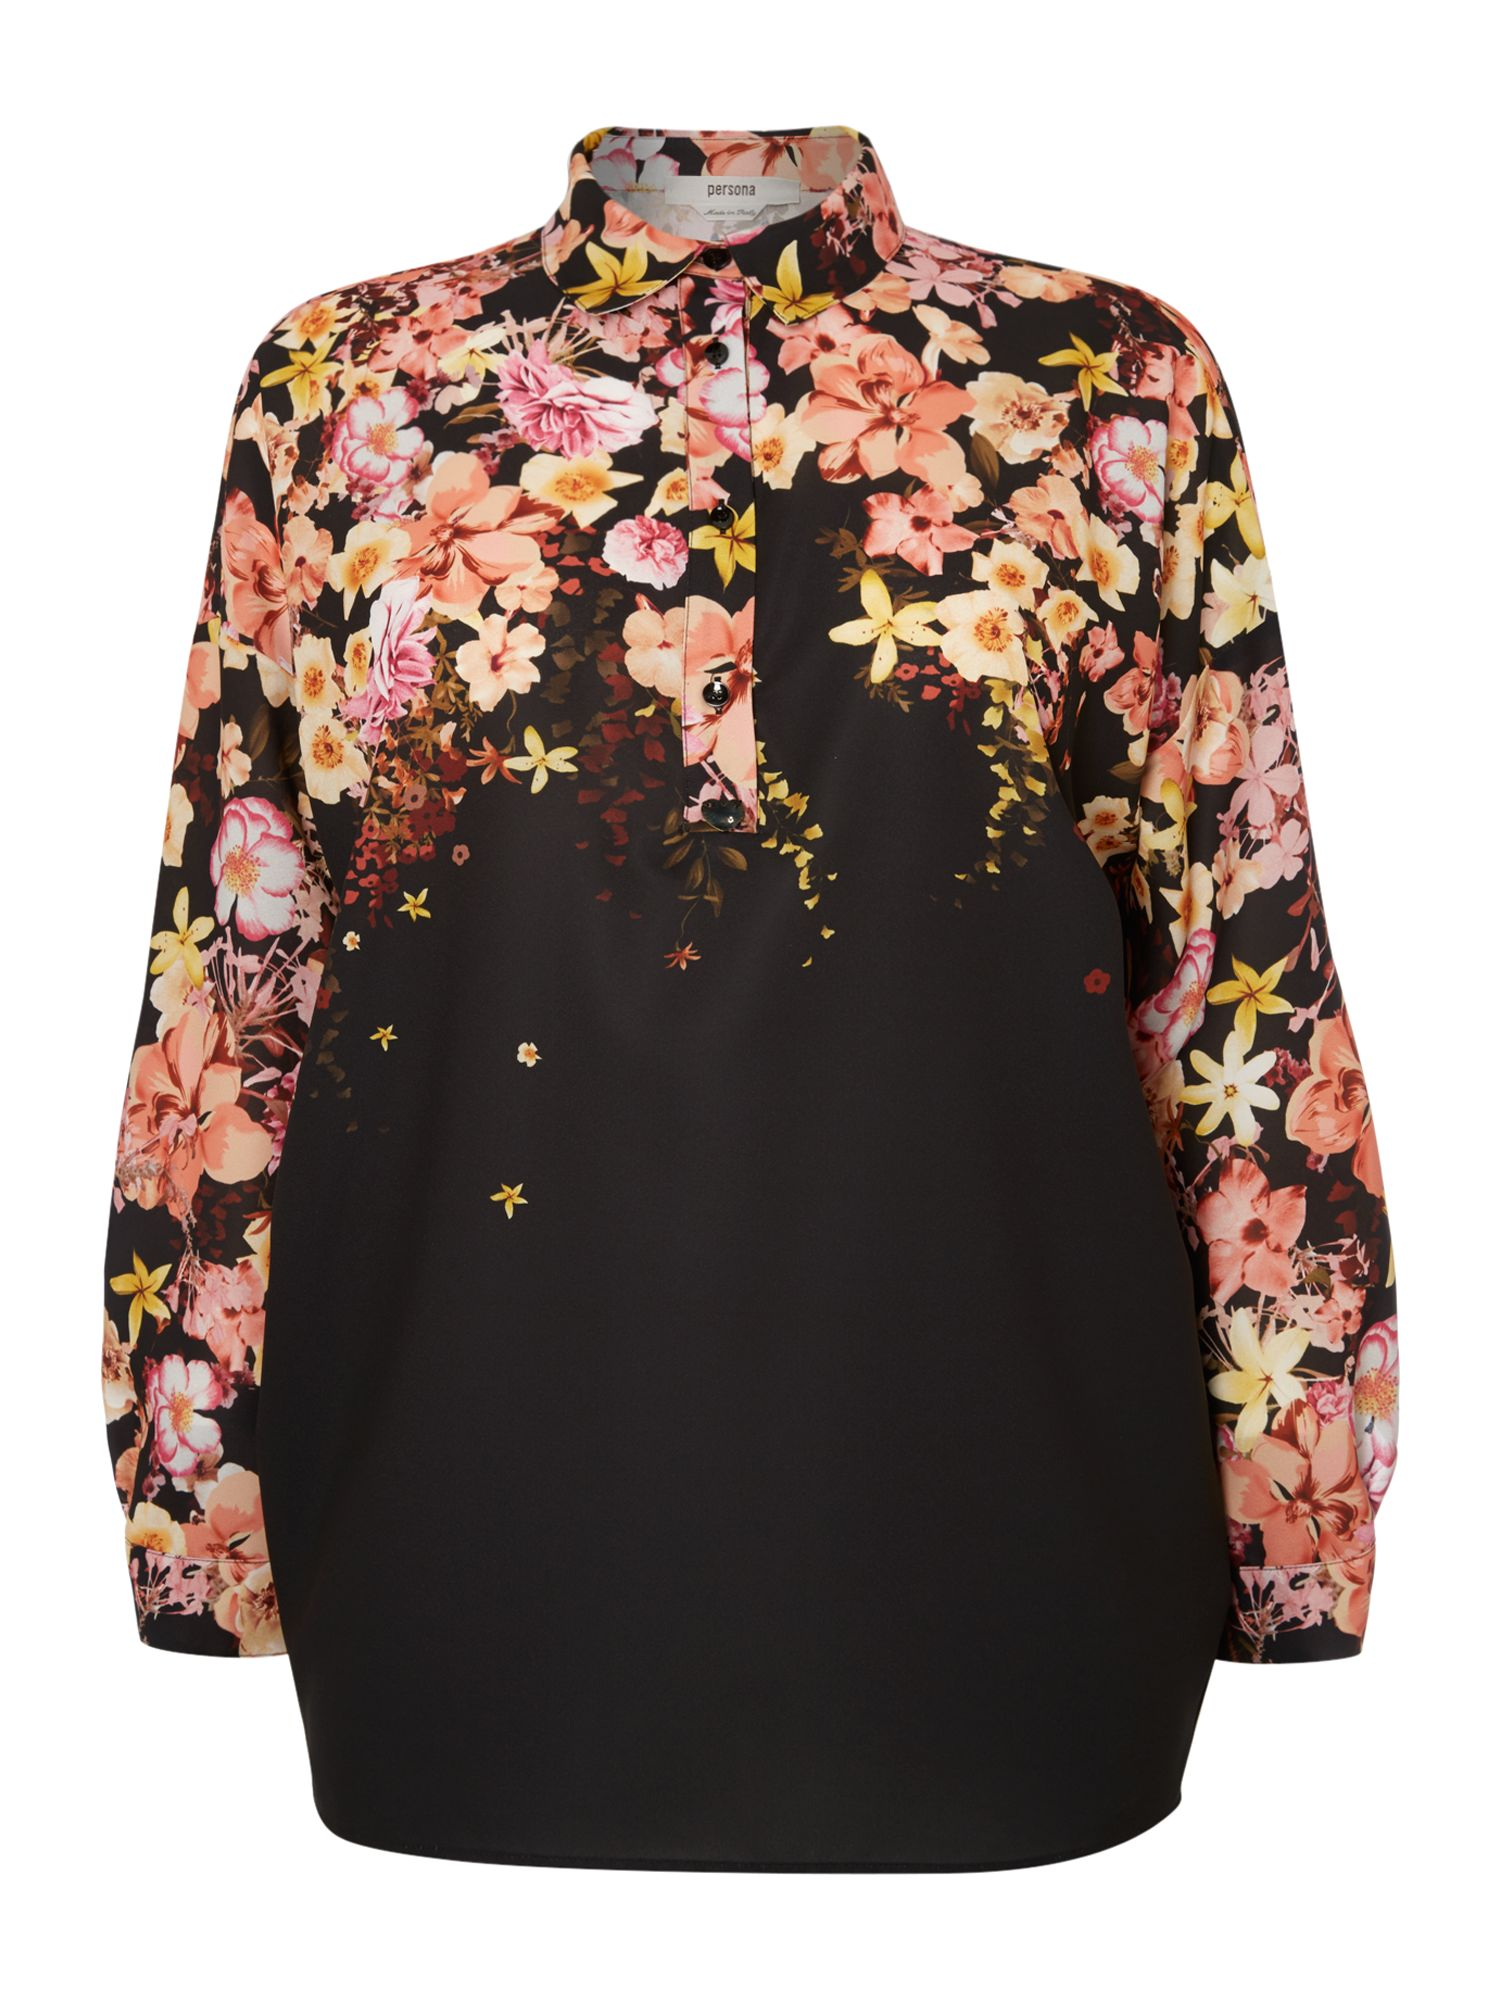 Persona Persona Plus Size Bolivia long sleeved floral shirt, Black